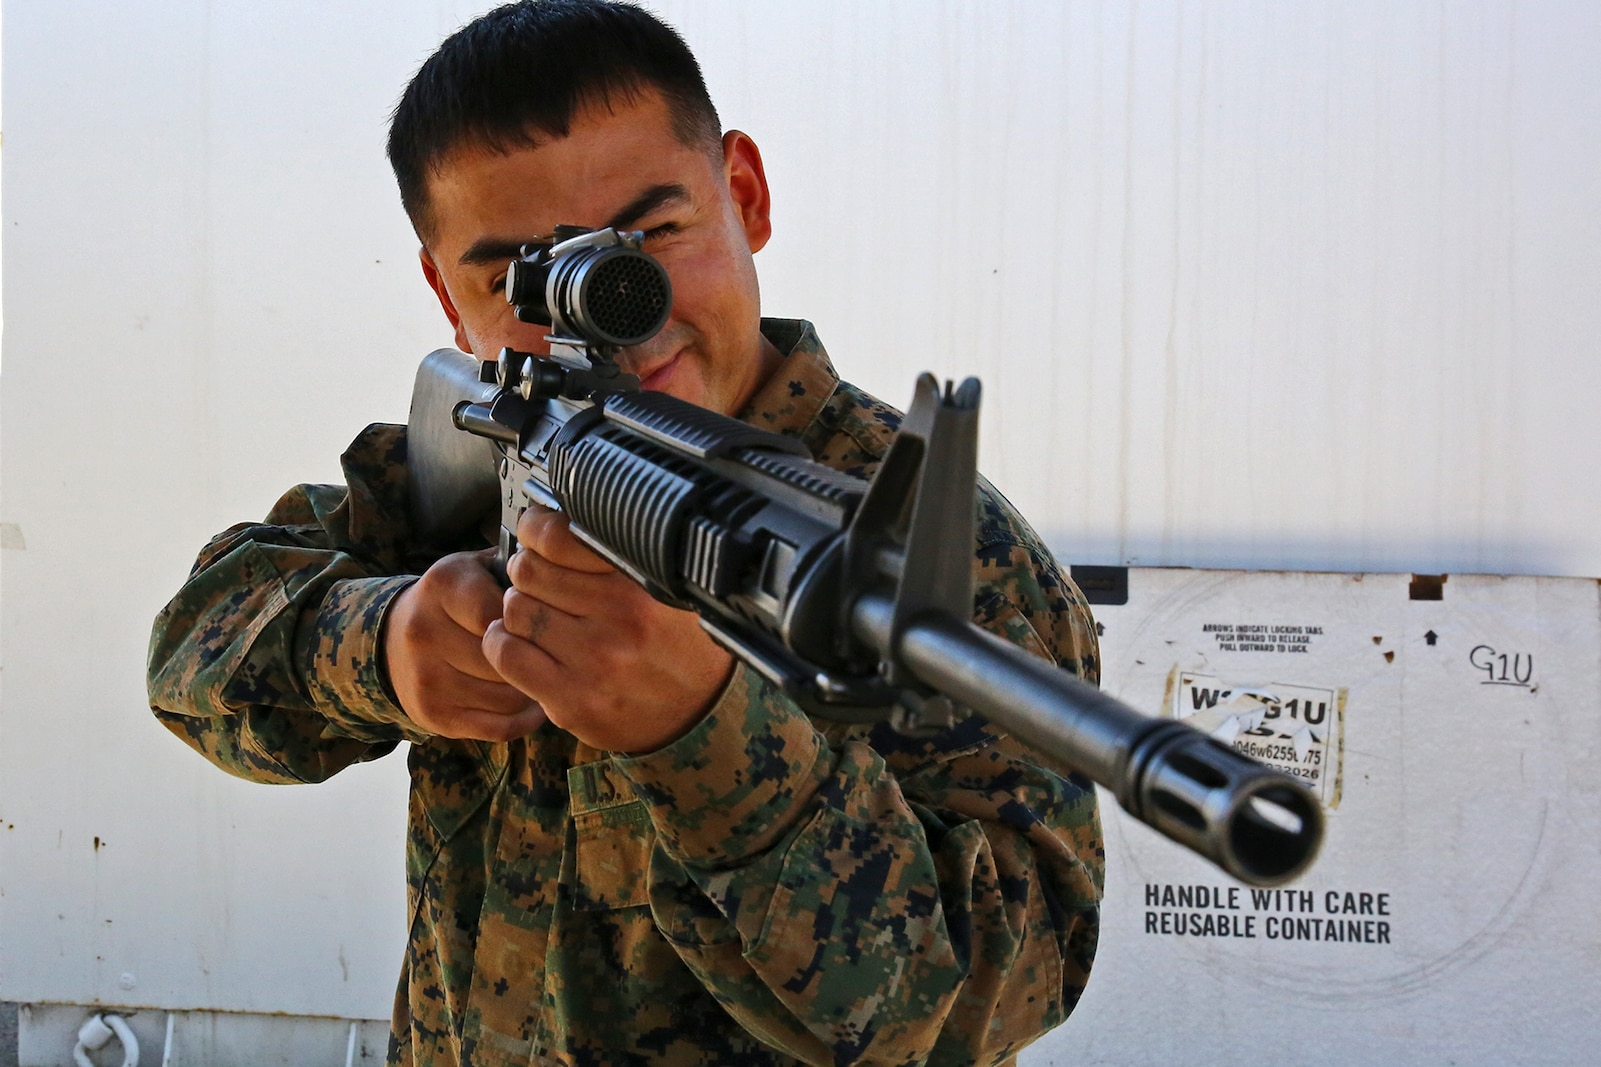 Corporal Dehorta, a small arms repair technician, Combat Logistics Battalion 15, Combat Logistics Regiment 17, 1st Marine Logistics Group, completes a functions check of a weapon by ensuring the optic is in working order aboard Camp Pendleton, Calif., Nov. 13, 2013. As a lance corporal, he was the Marine of the Quarter and the Marine of the Year. Now he is the Noncommissioned Officer of the Quarter.